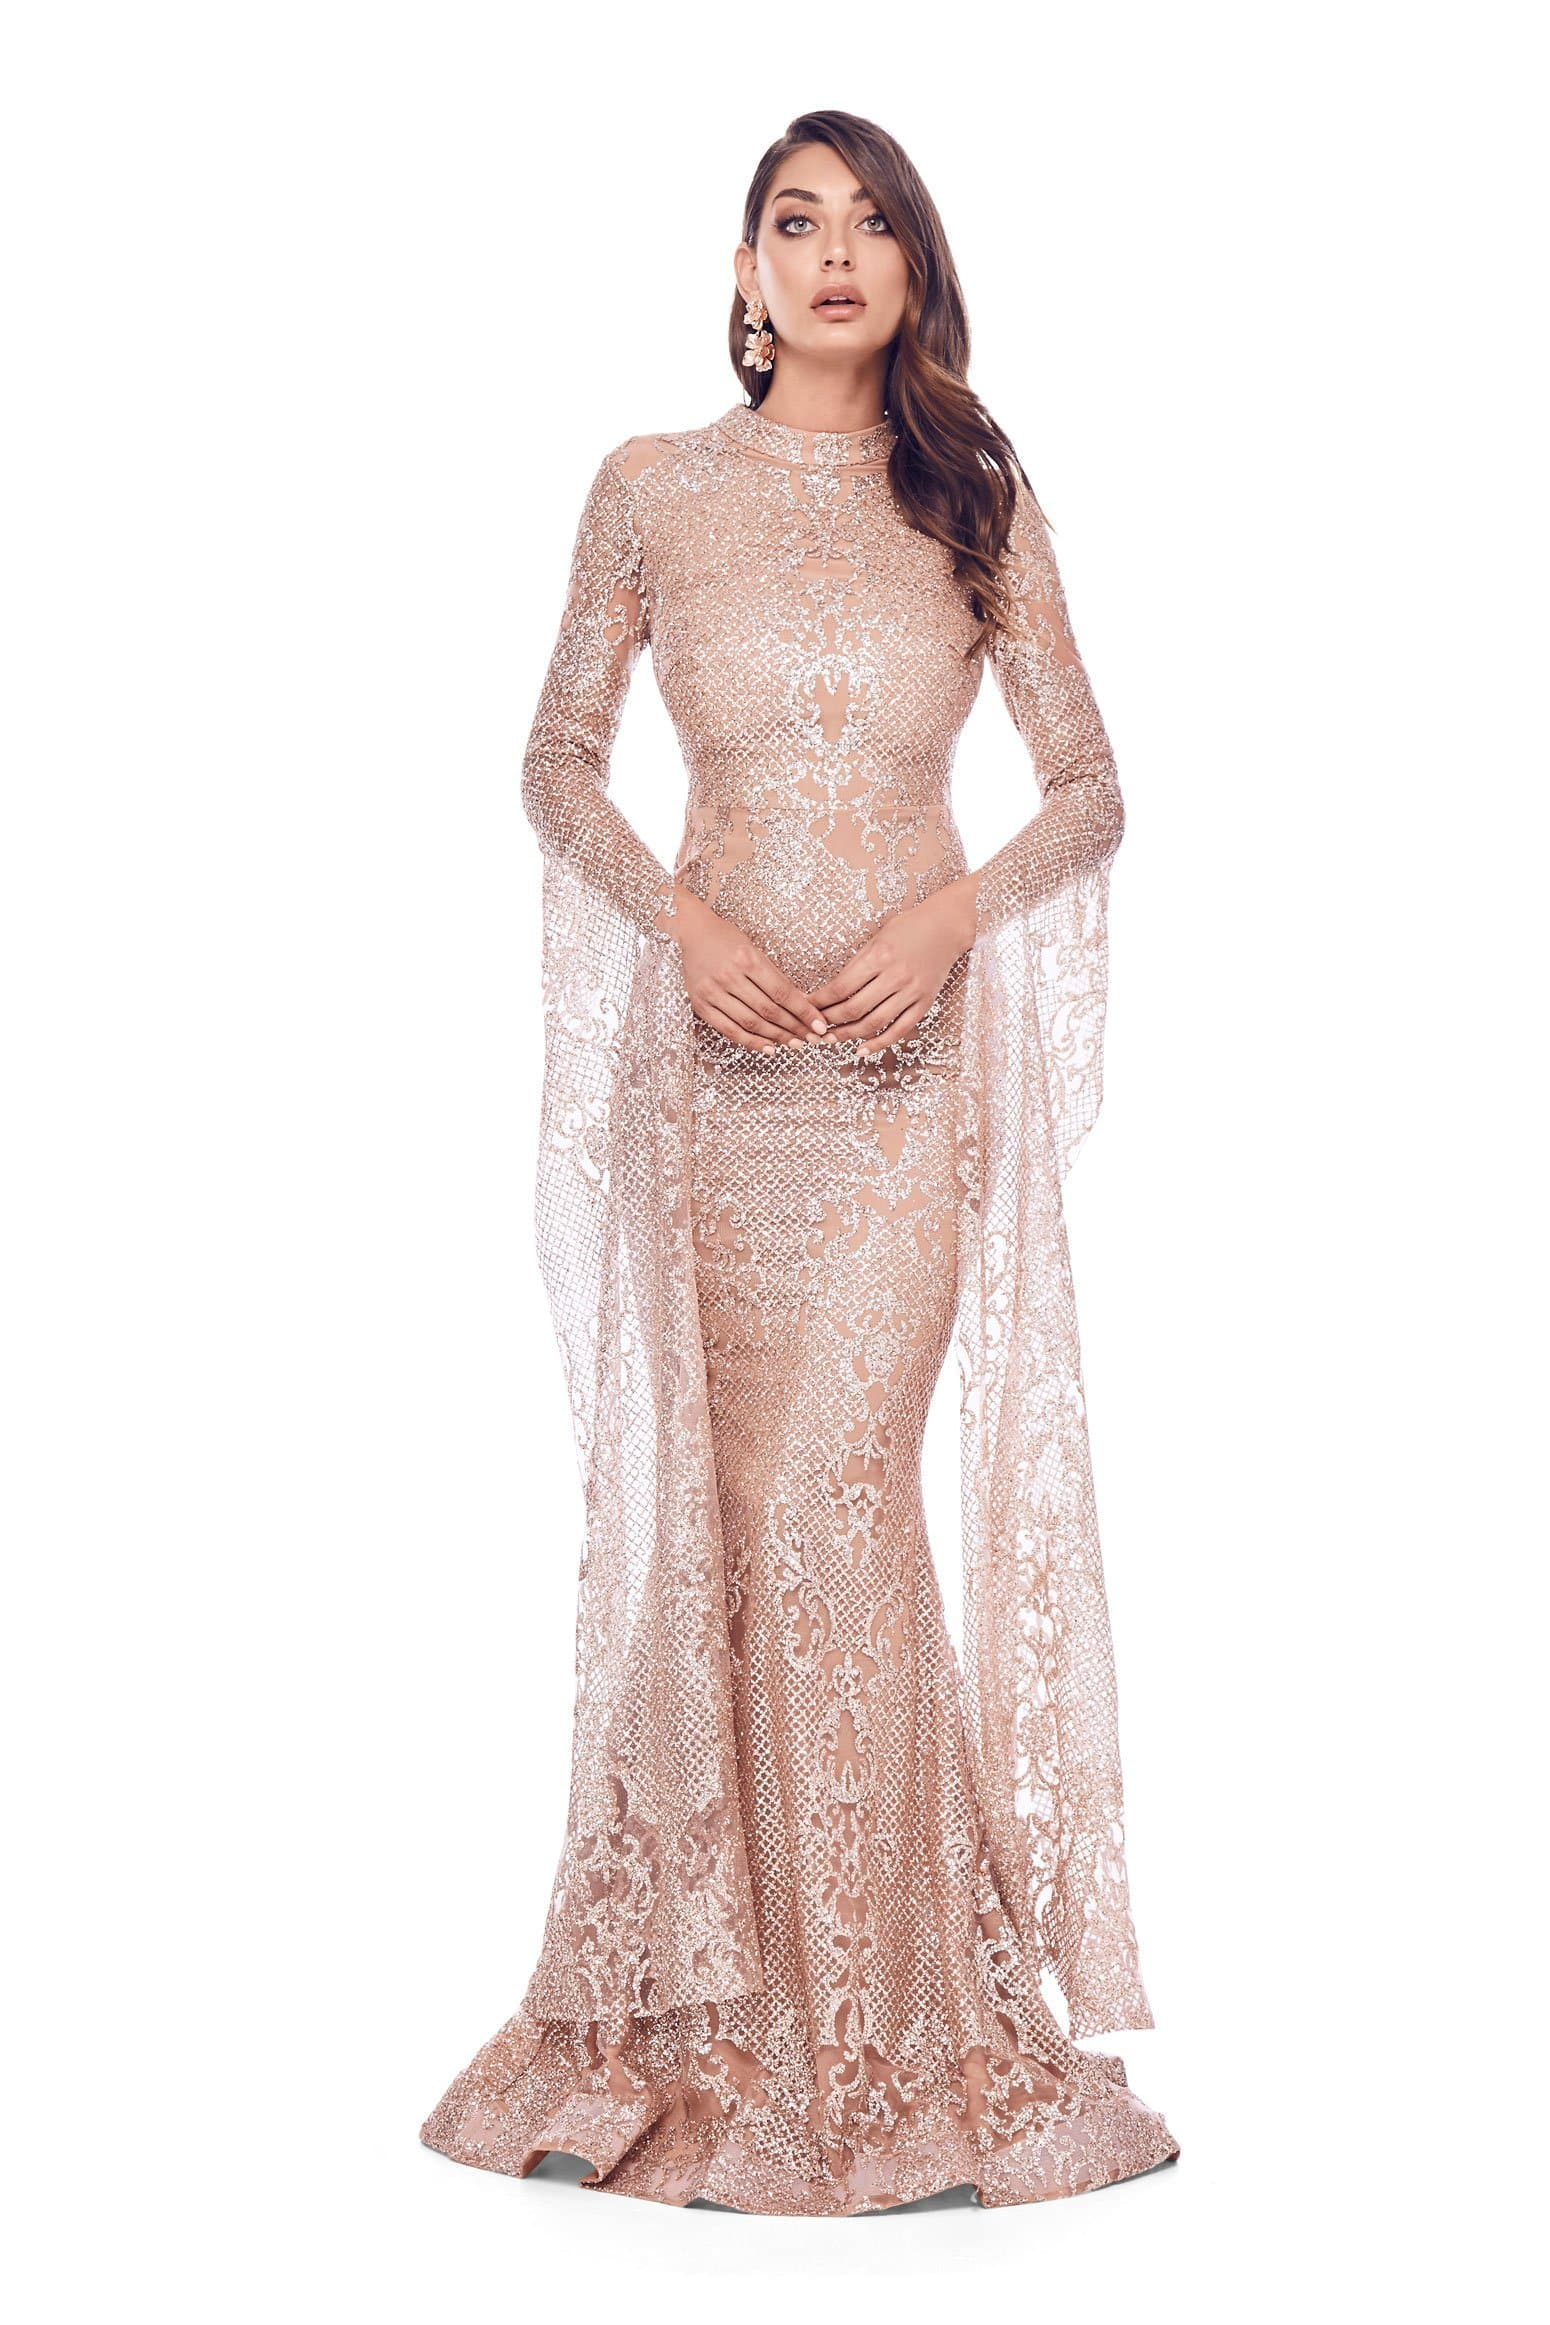 Victoria Sparkling Gown - Rose Gold Glitter Cape Sleeve Mermaid ...